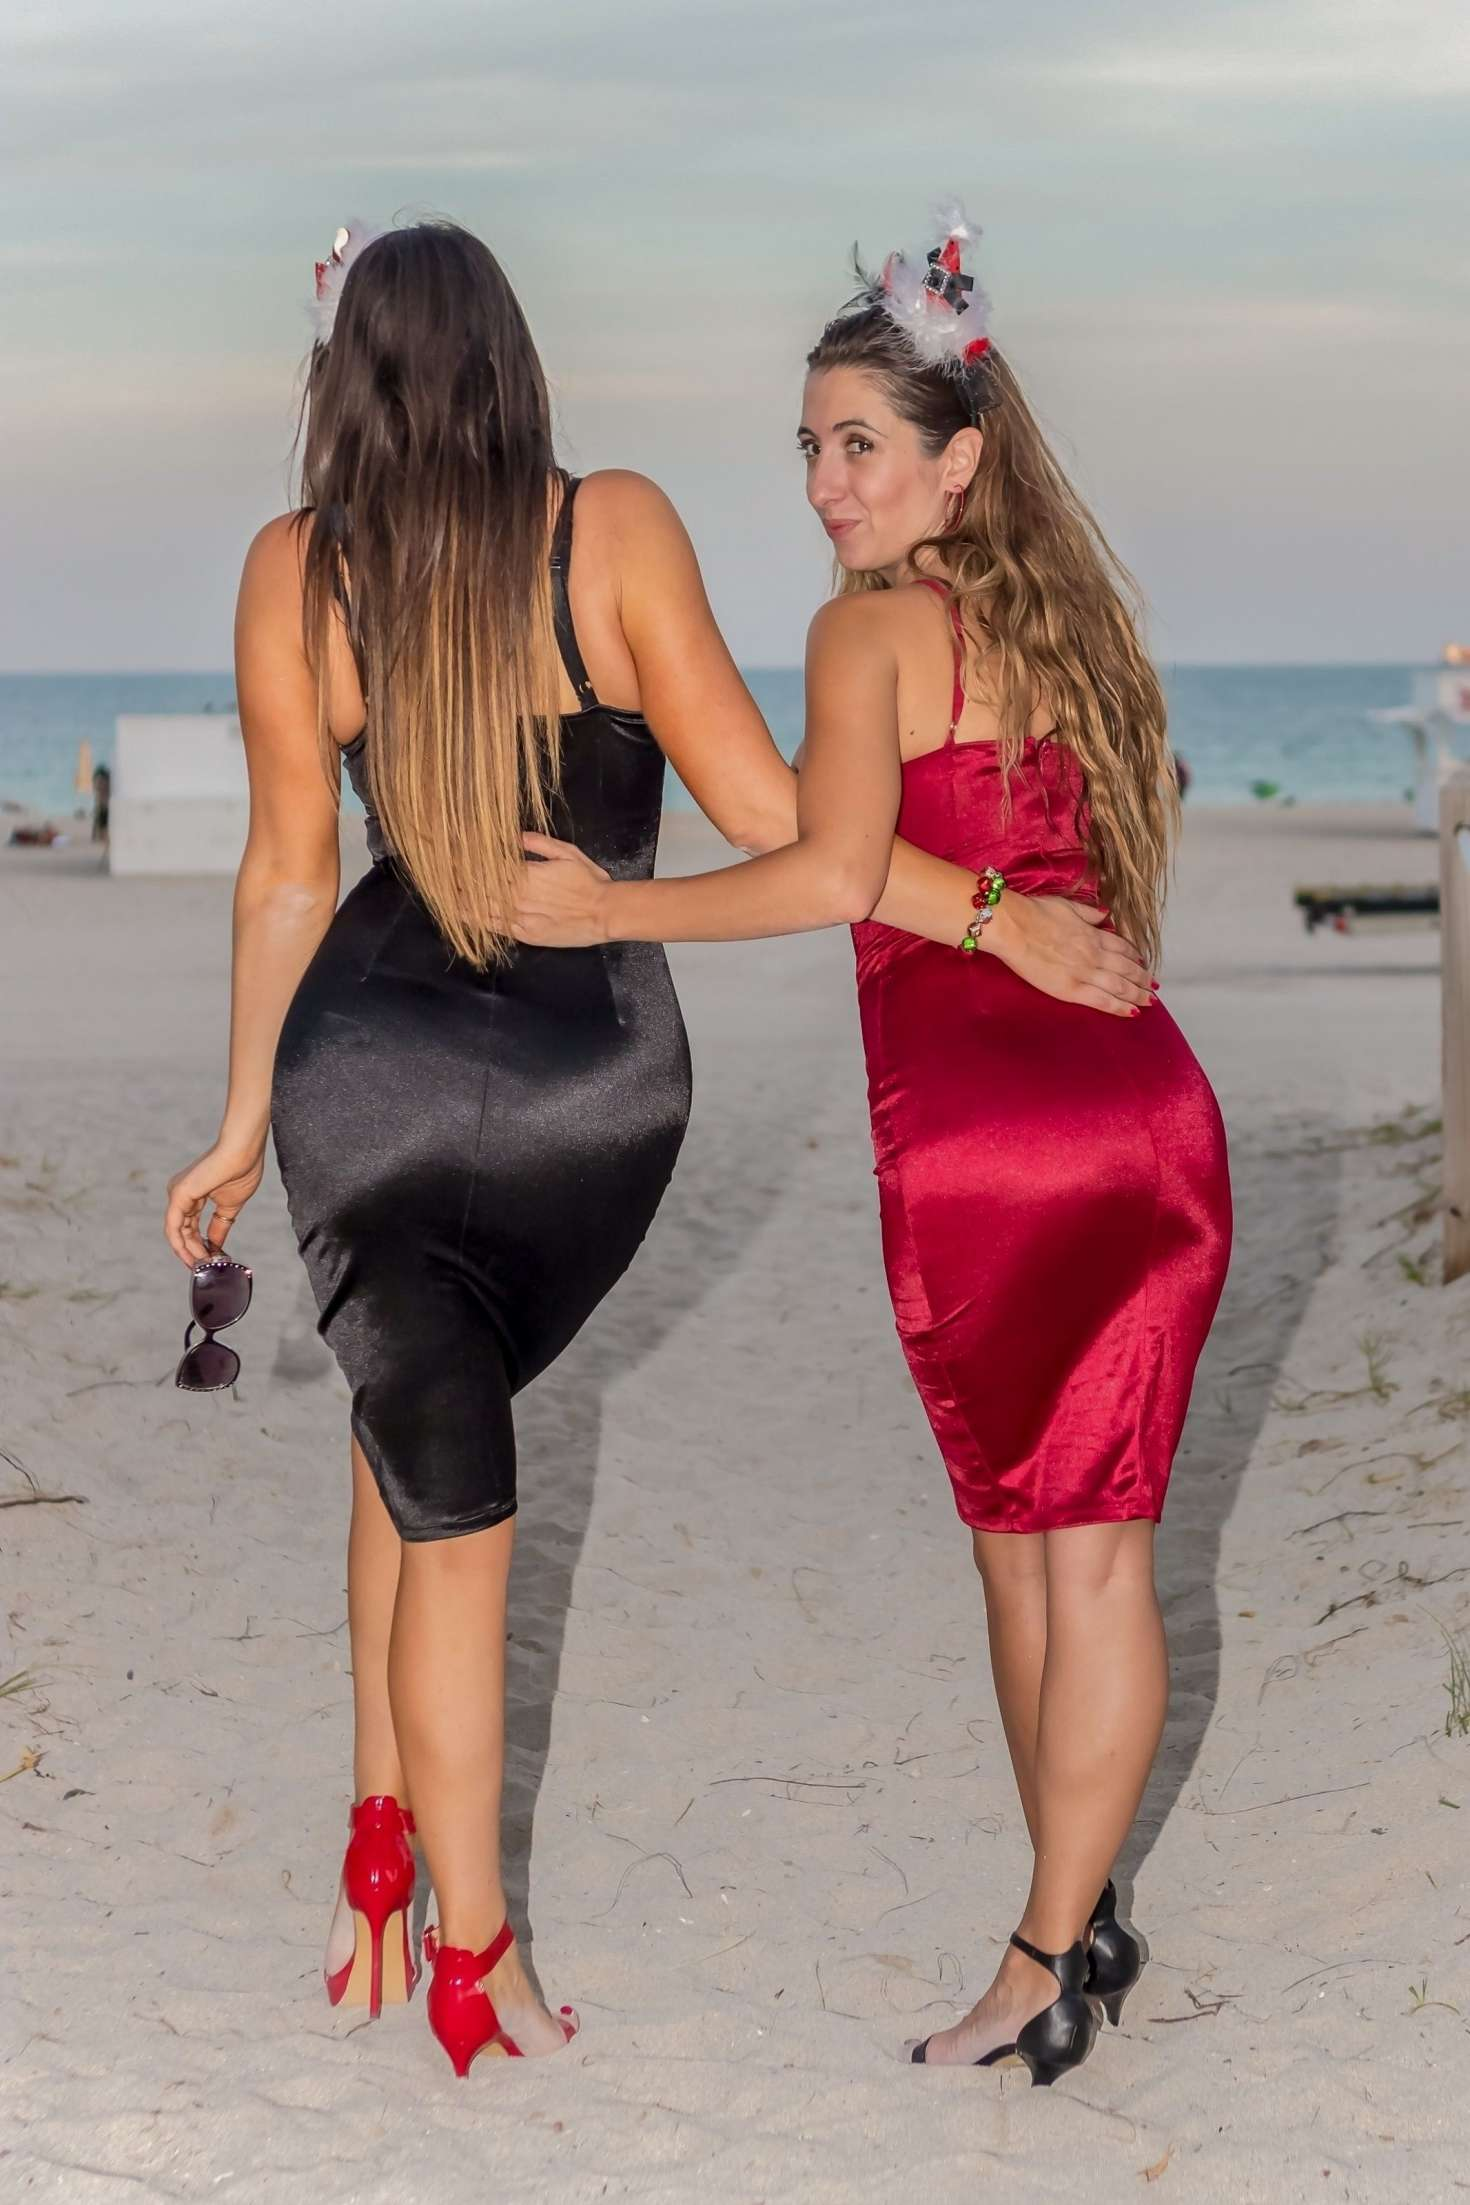 Claudia Romani And Lauren Francesca On Miami Beach 02 Gotceleb Lauren francesca @laurenfrancesca turn on my notifications for a duet! gotceleb